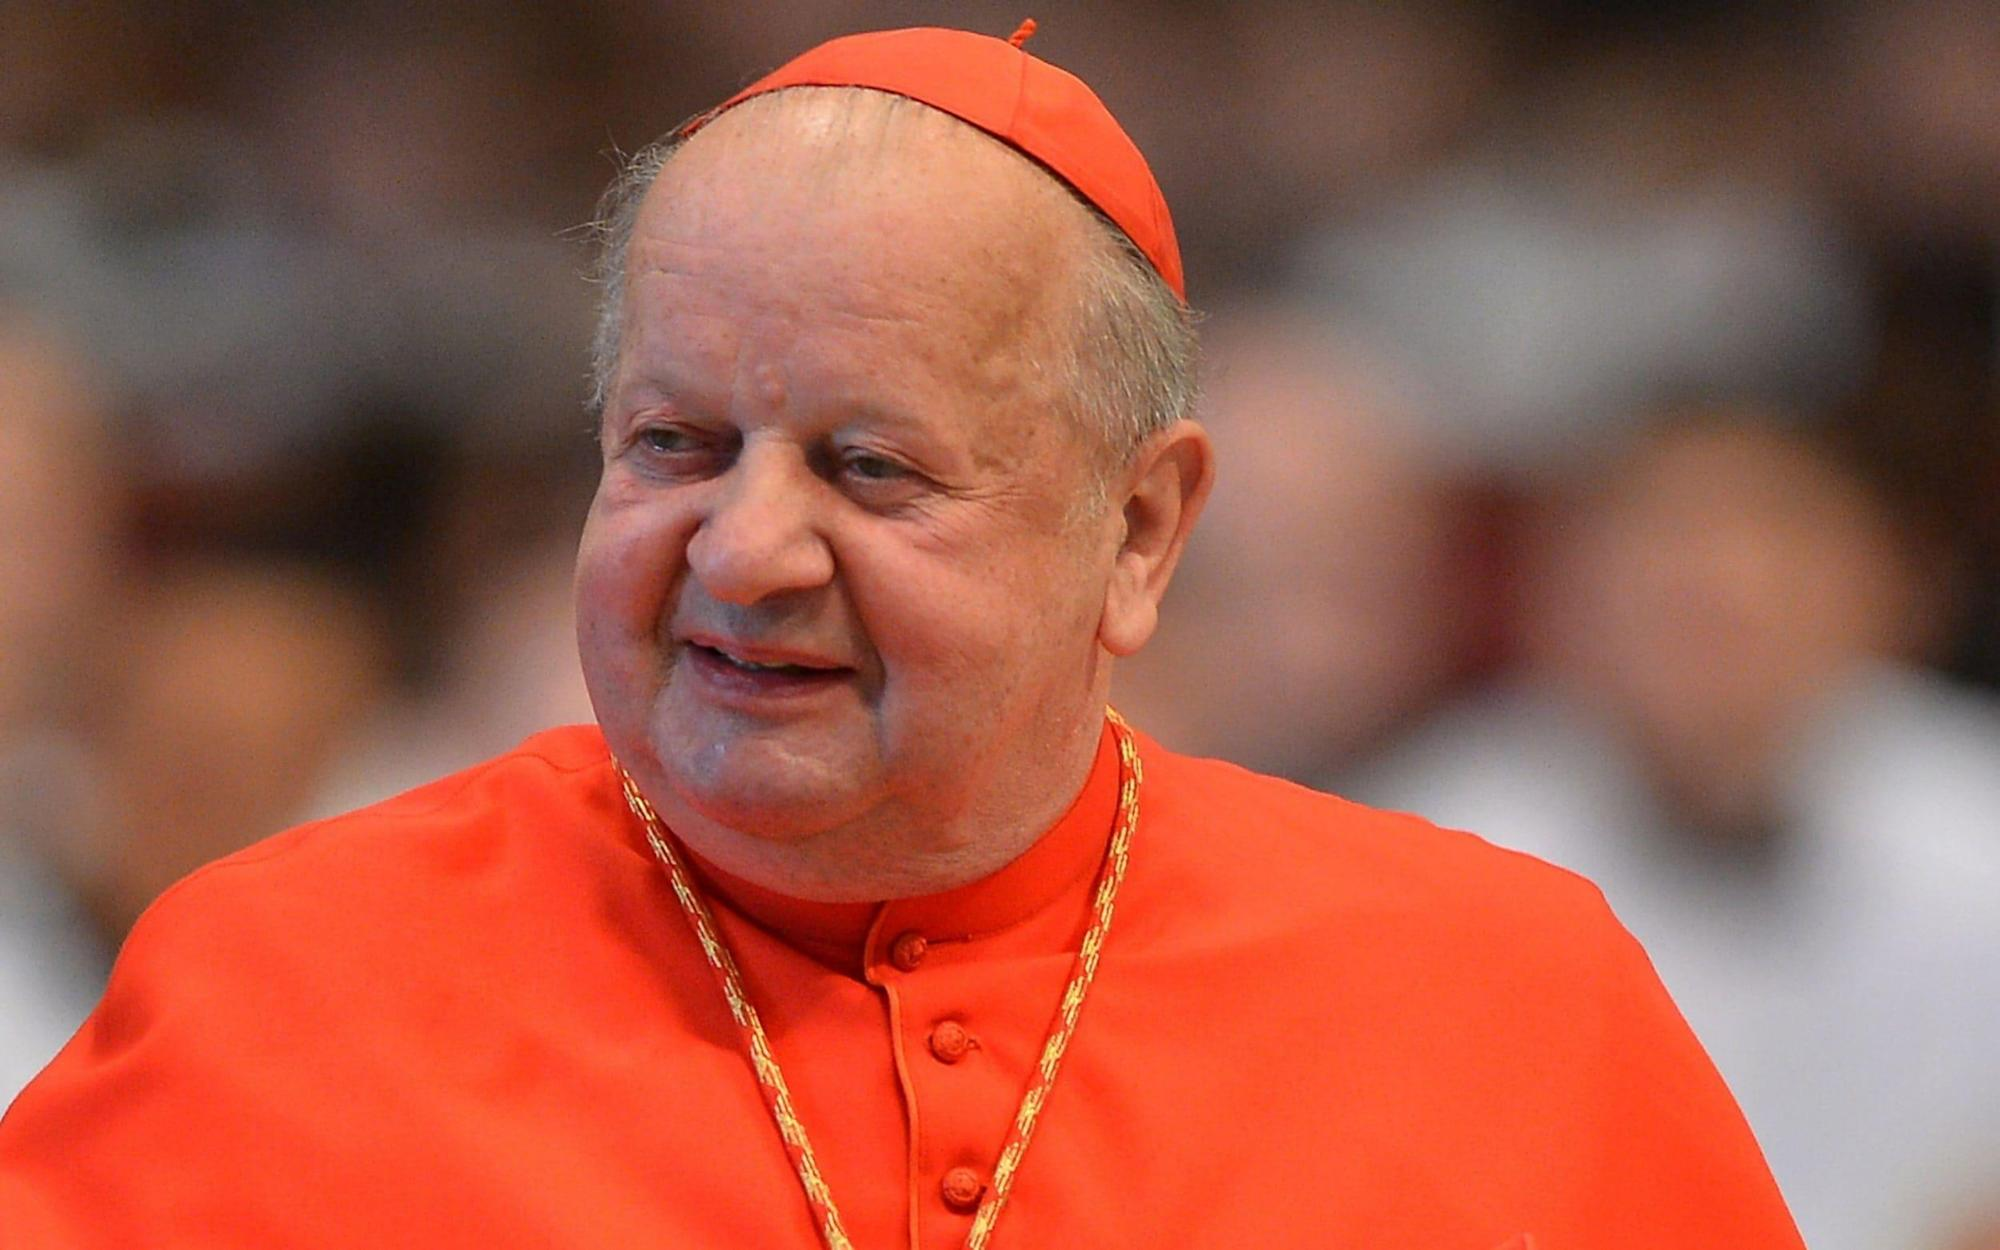 Polish personal secretary to Pope John Paul II accused of turning blind eye to sexual abuse